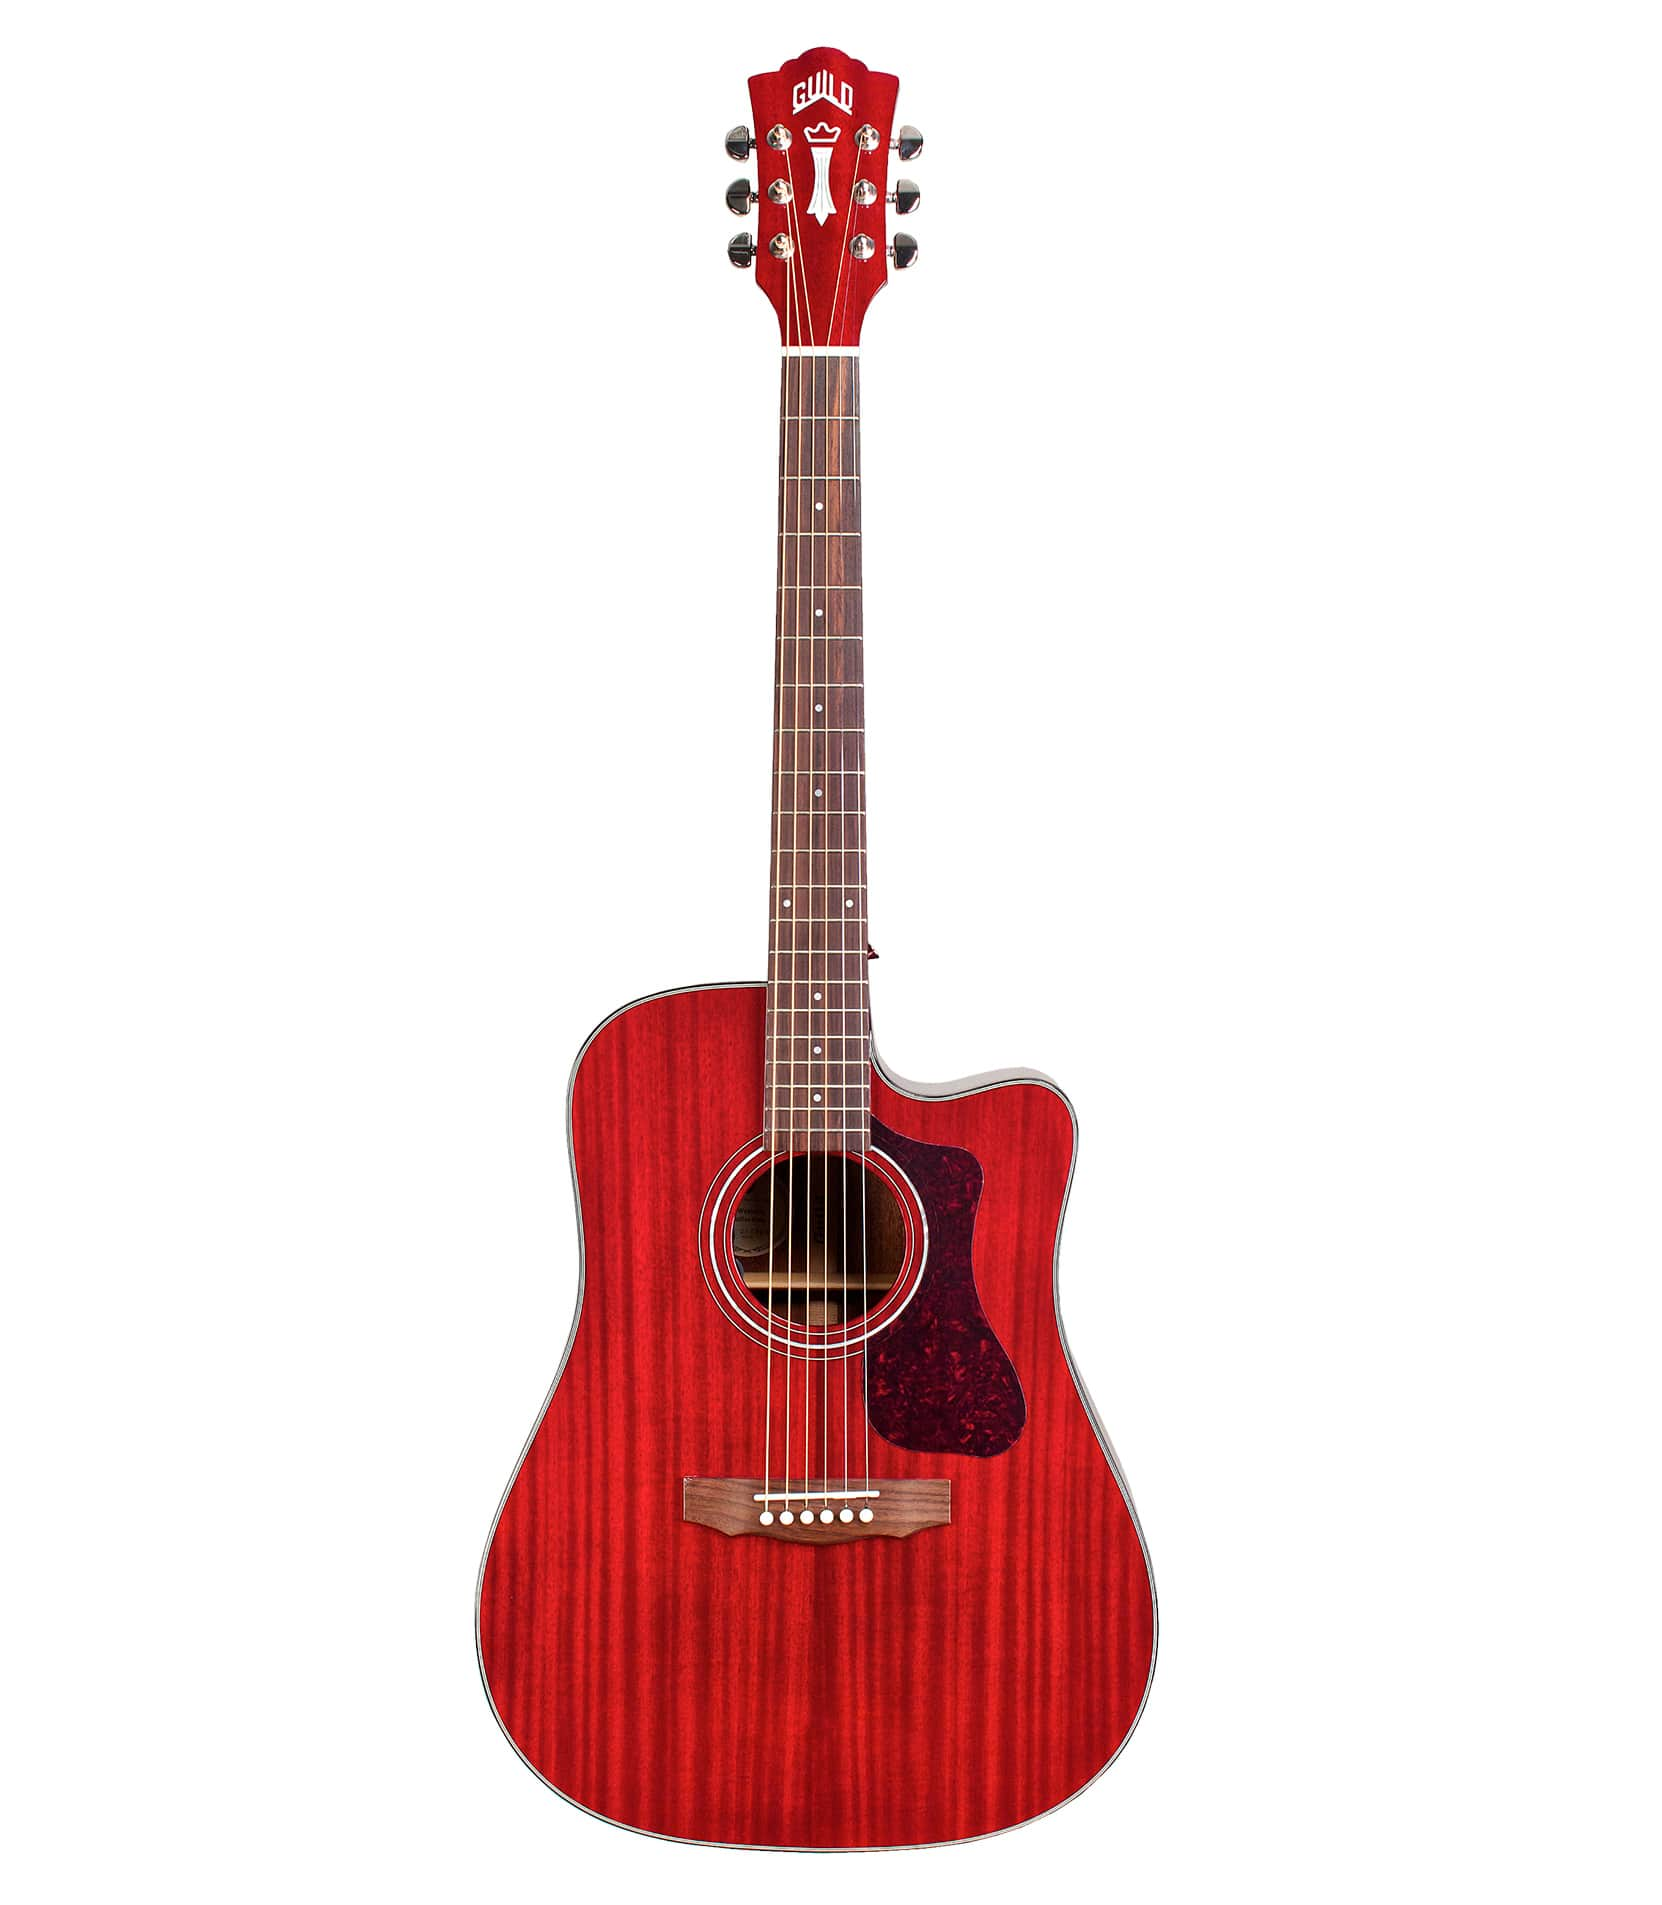 Guild - D120CRCE Dreadnought Cutaway Acoustic Cherry Red